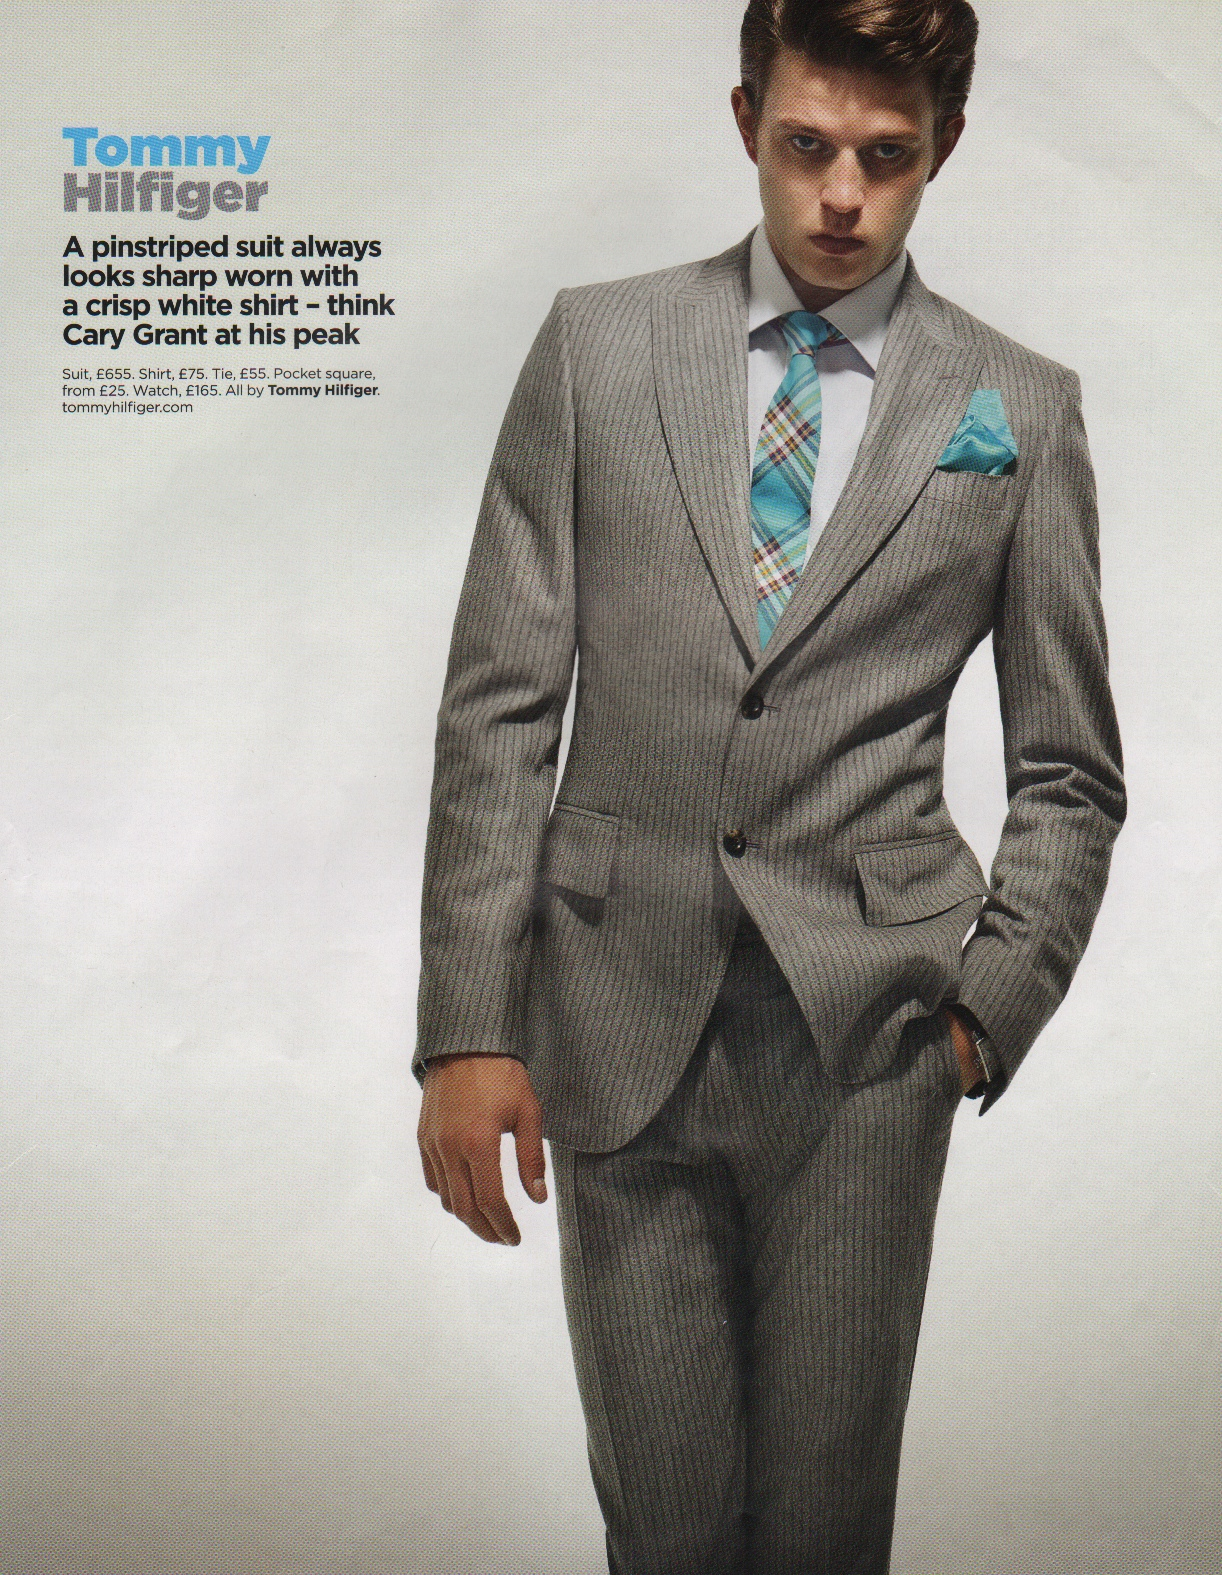 The gray suit with the kind of